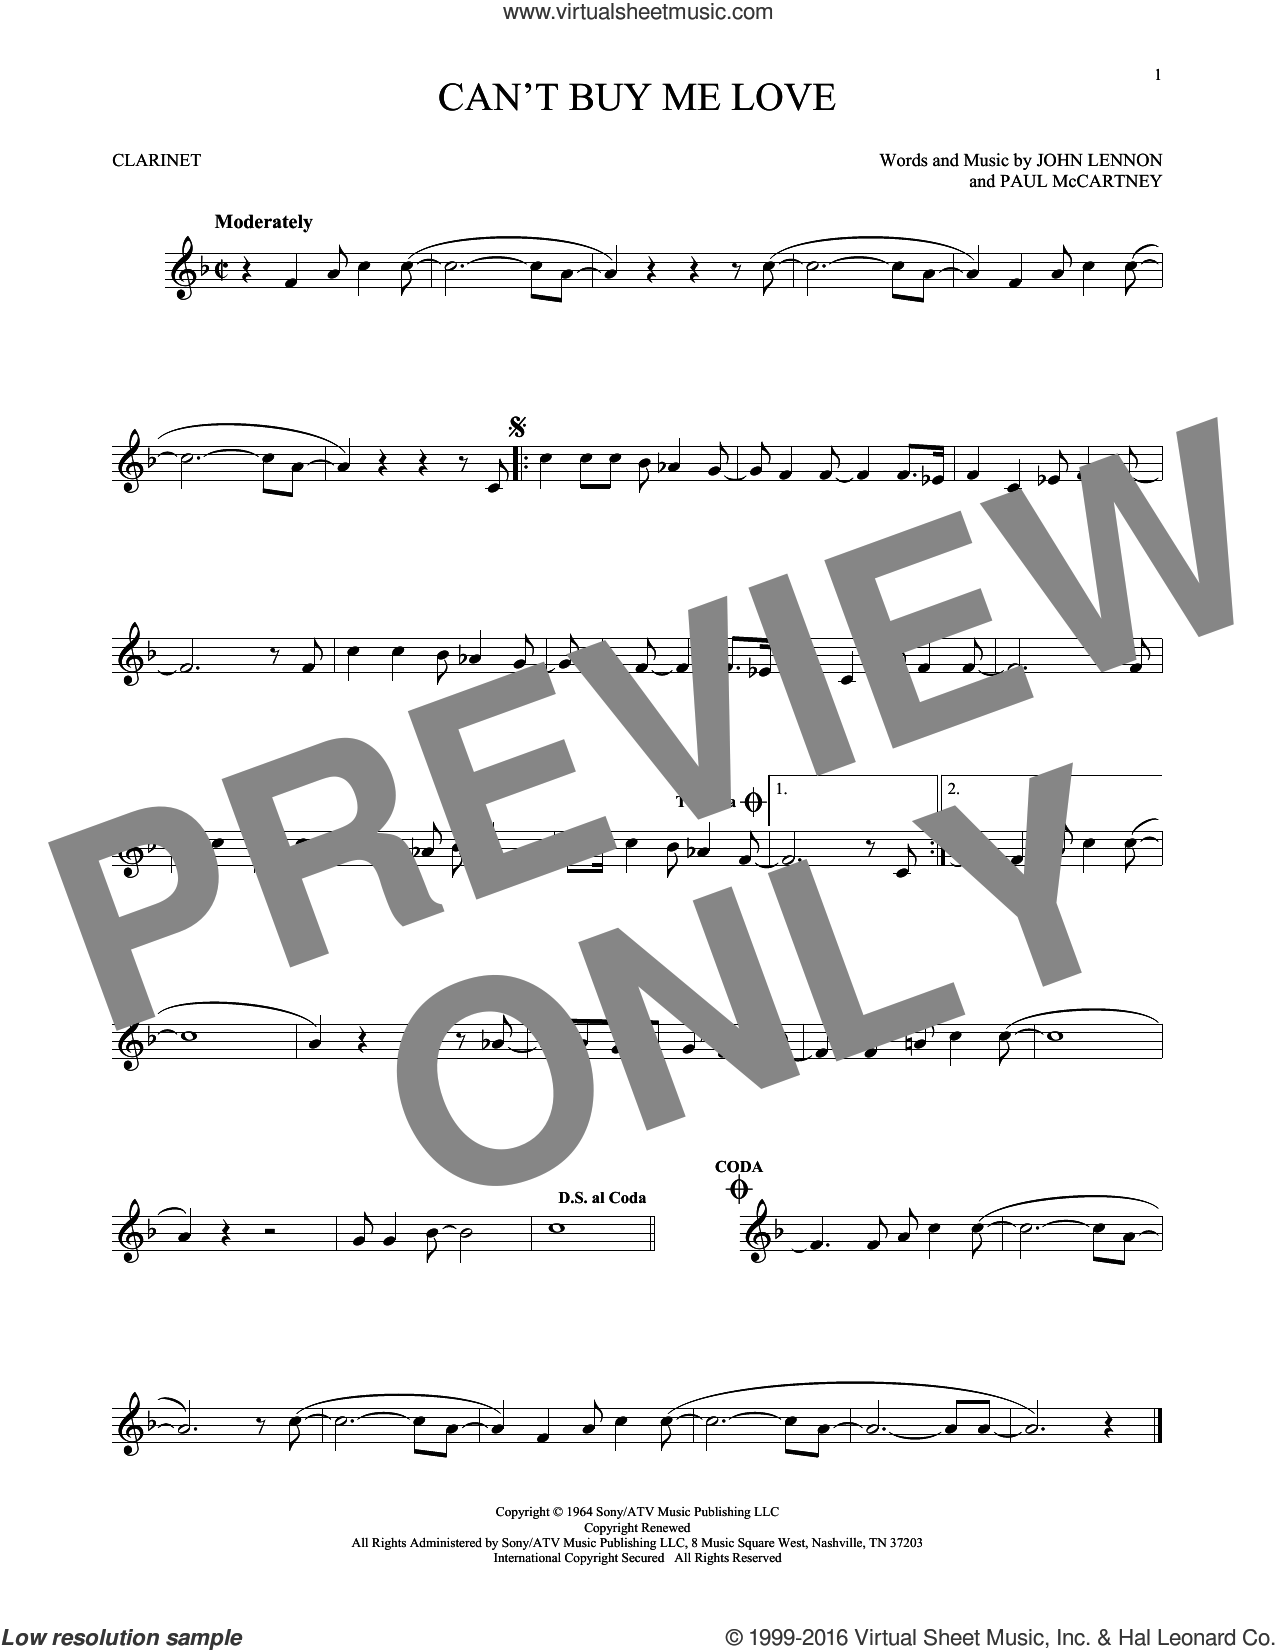 Can't Buy Me Love sheet music for clarinet solo by The Beatles, John Lennon and Paul McCartney, intermediate